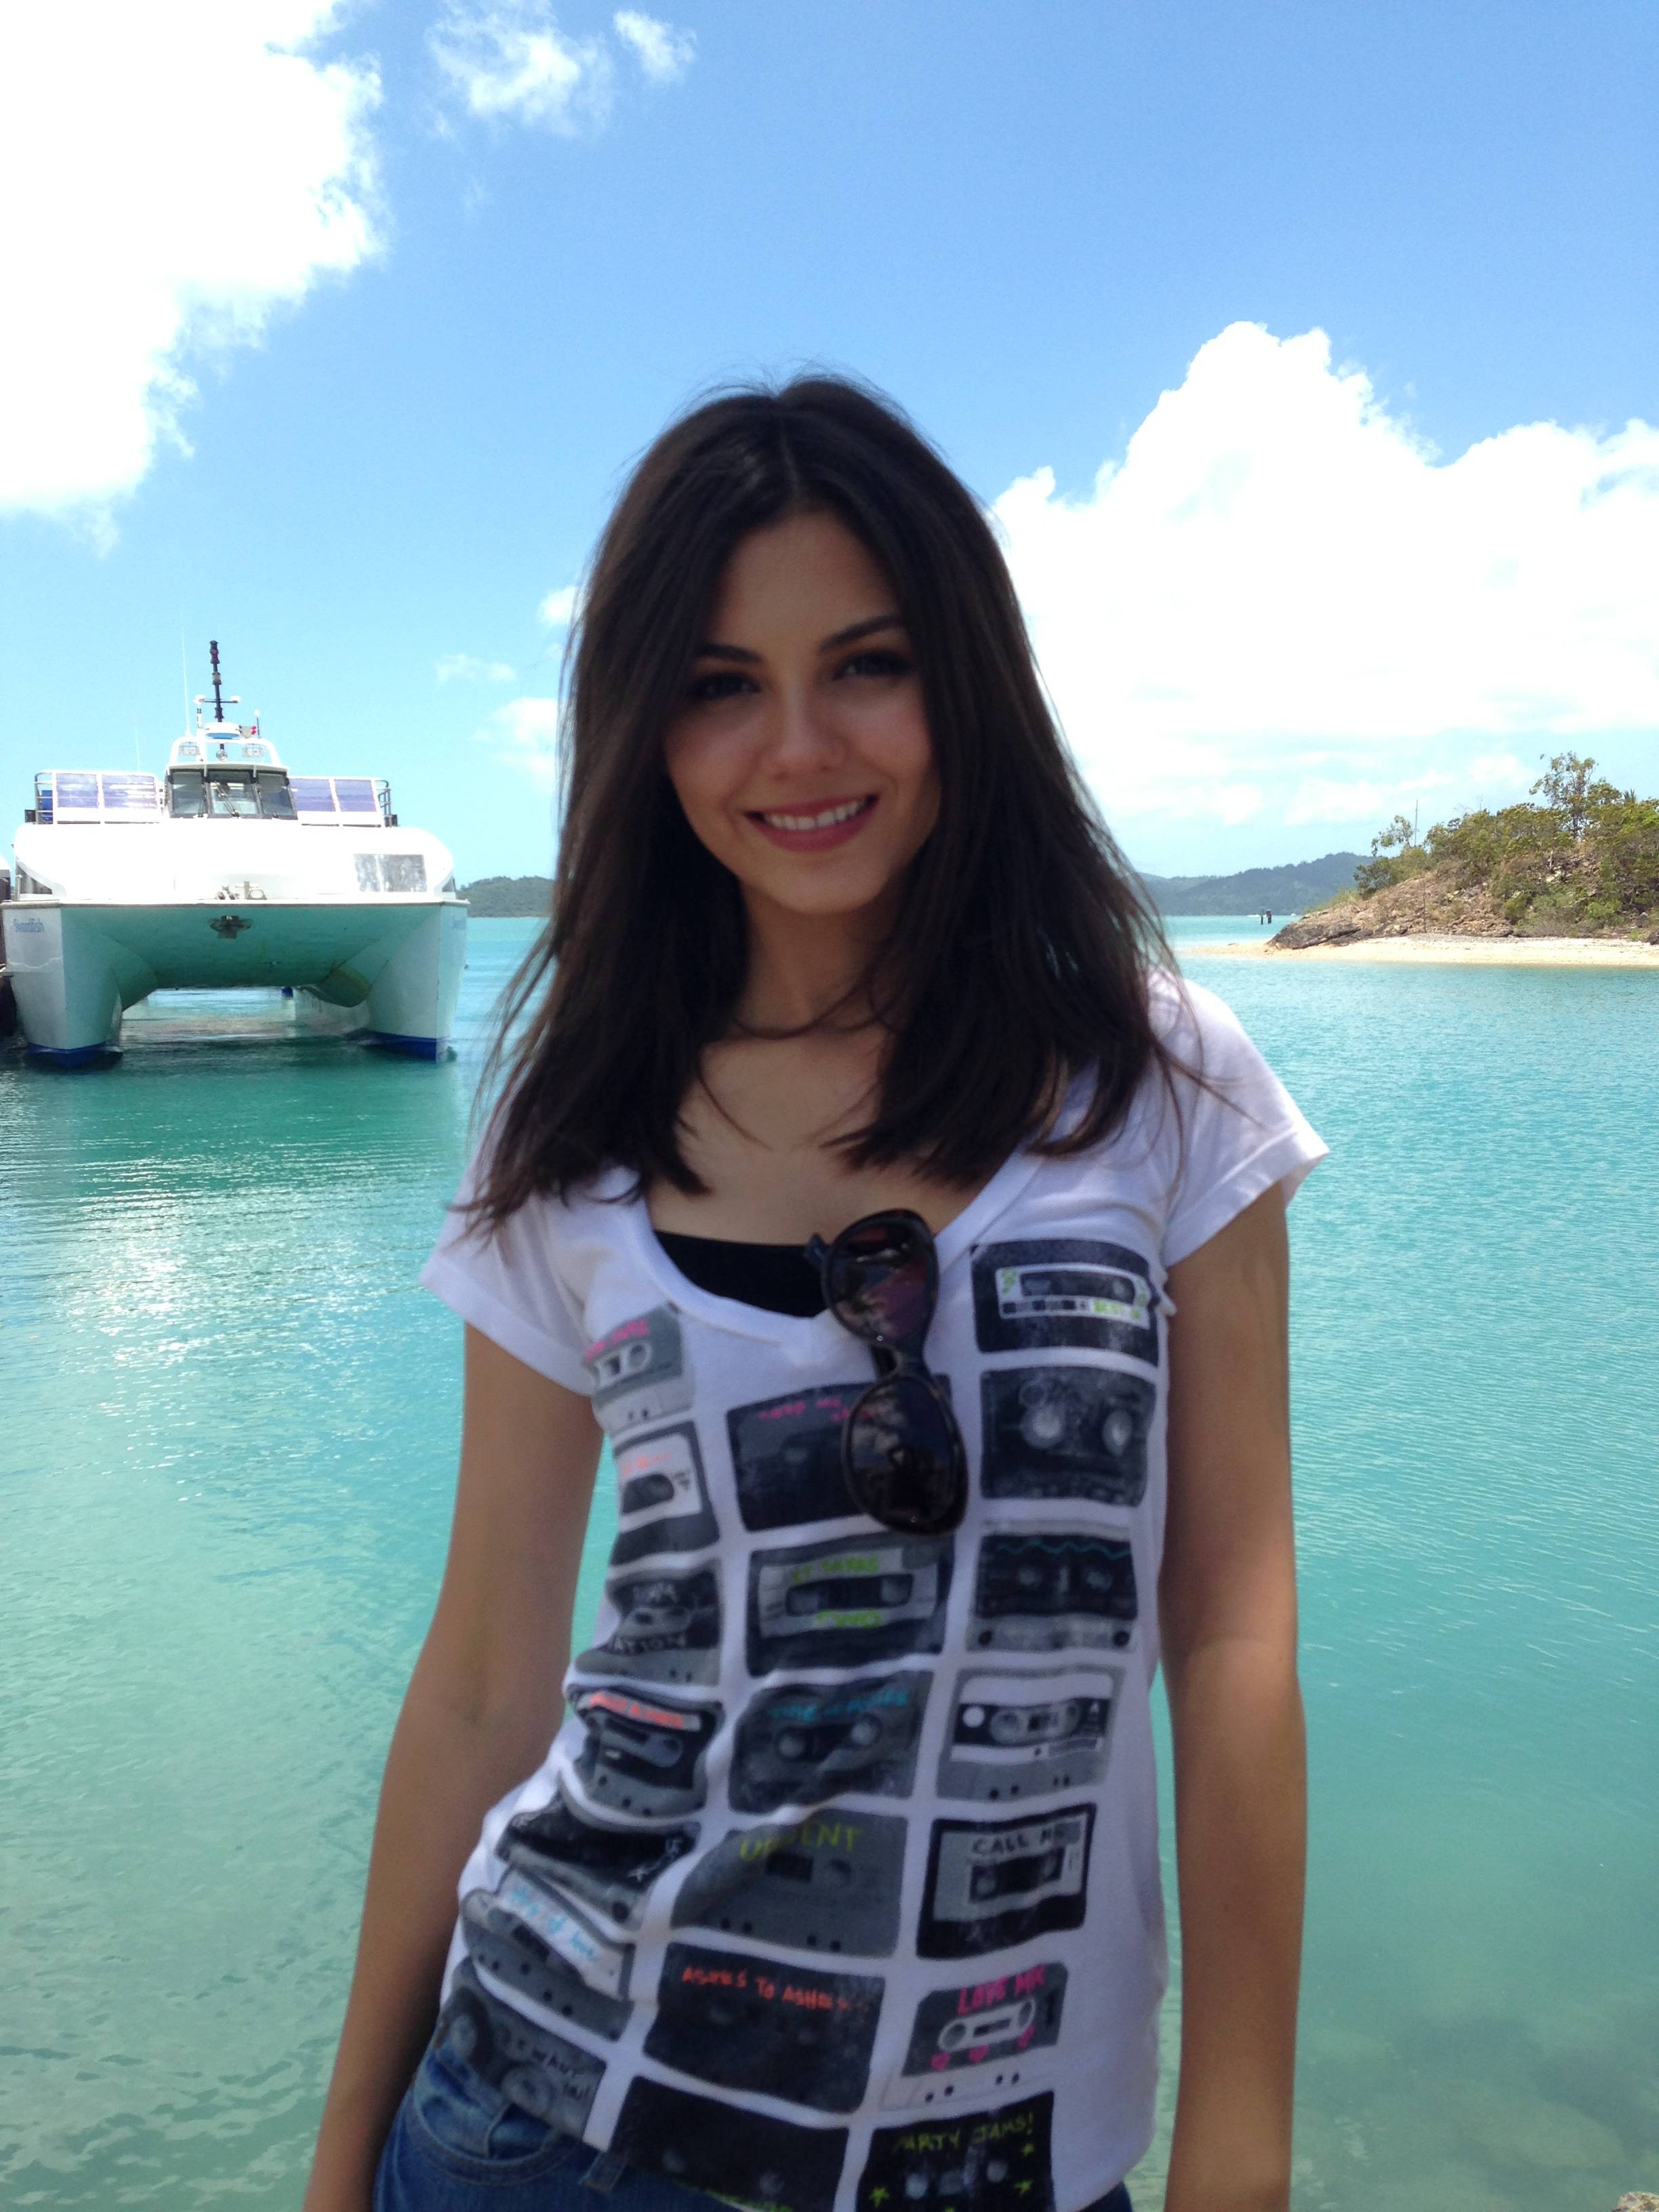 Victoria Justice Leaks (32 Photos) | The Fappening - News